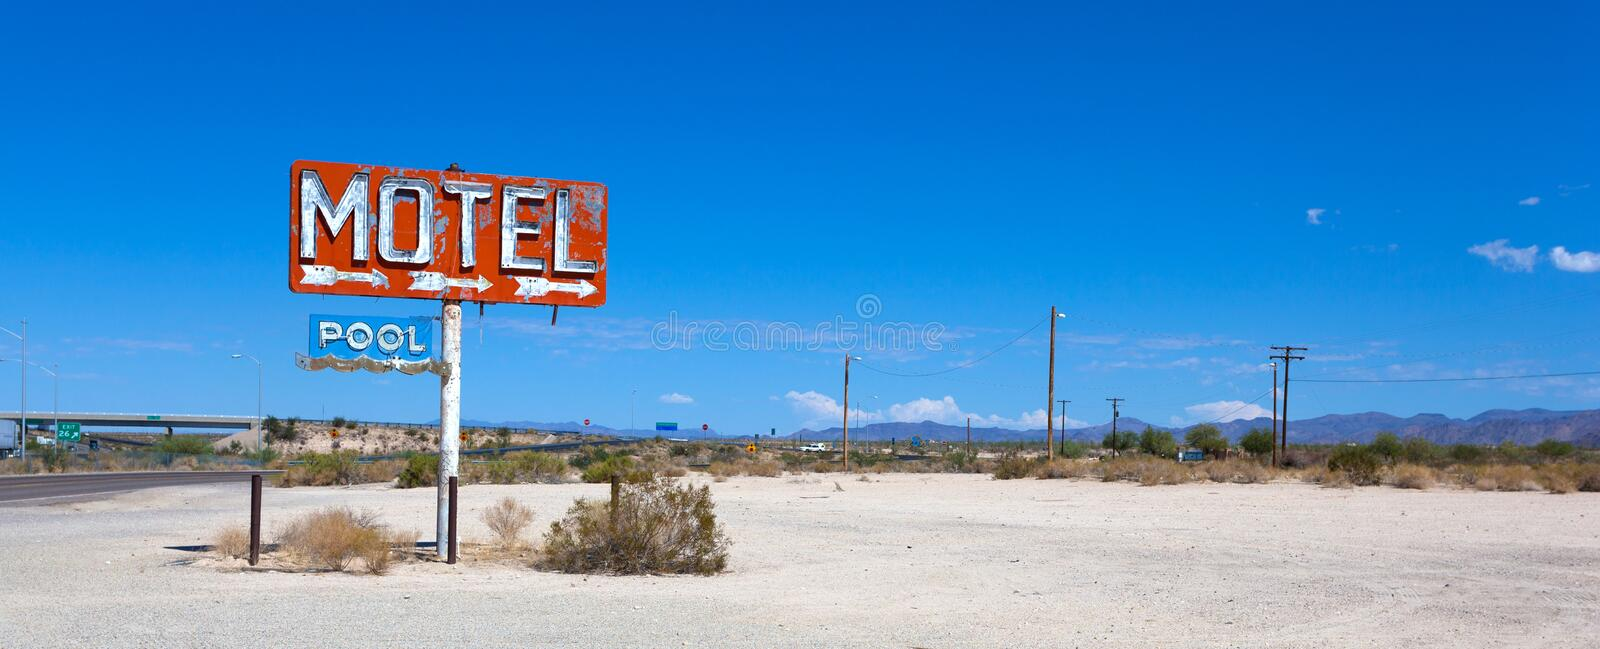 Abadoned, vintage motel sign on route 66. Old, abandoned motel sign in the dessert on Route 66 royalty free stock images